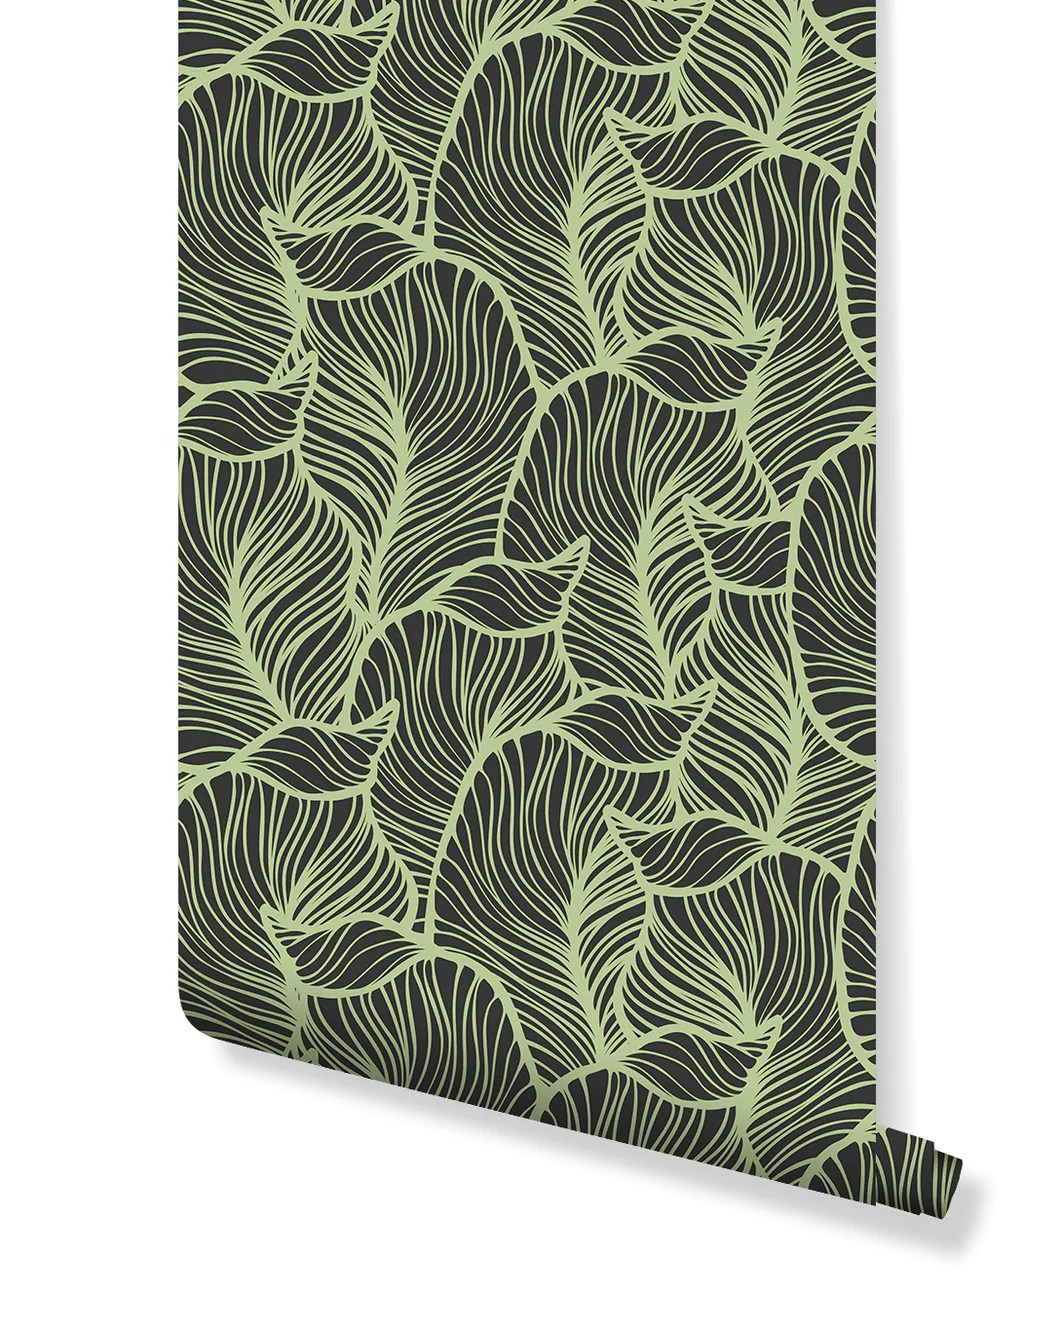 Self Adhesive Green Tropical Leaves Removable Wallpaper Vinyl Costacover